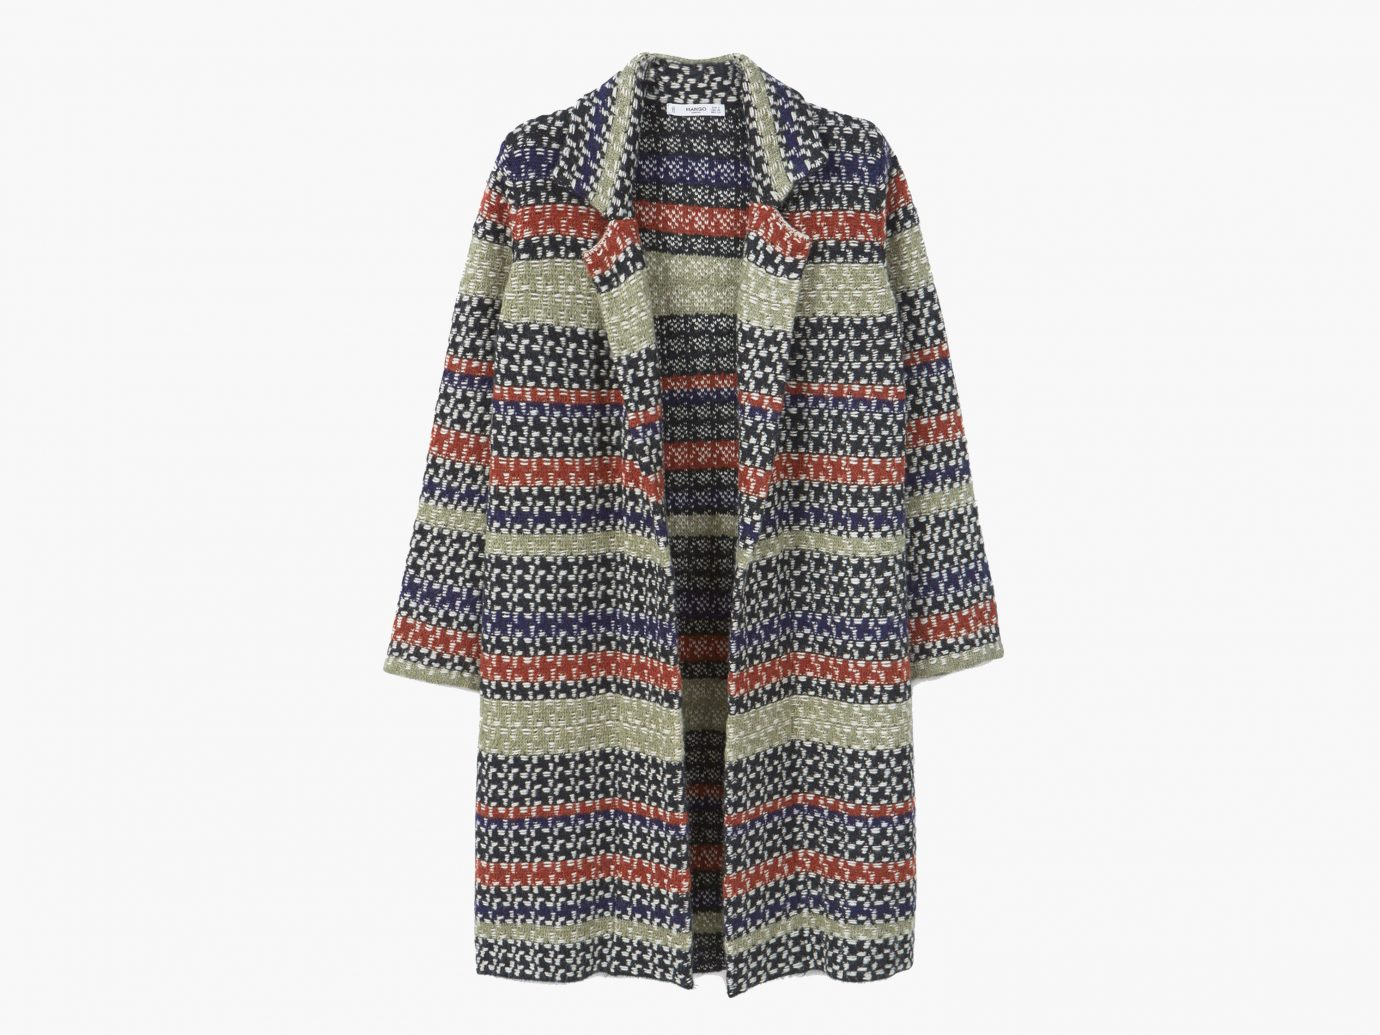 Style + Design clothing outerwear sleeve pattern woolen wool poncho sweater Design stole textile tartan colored